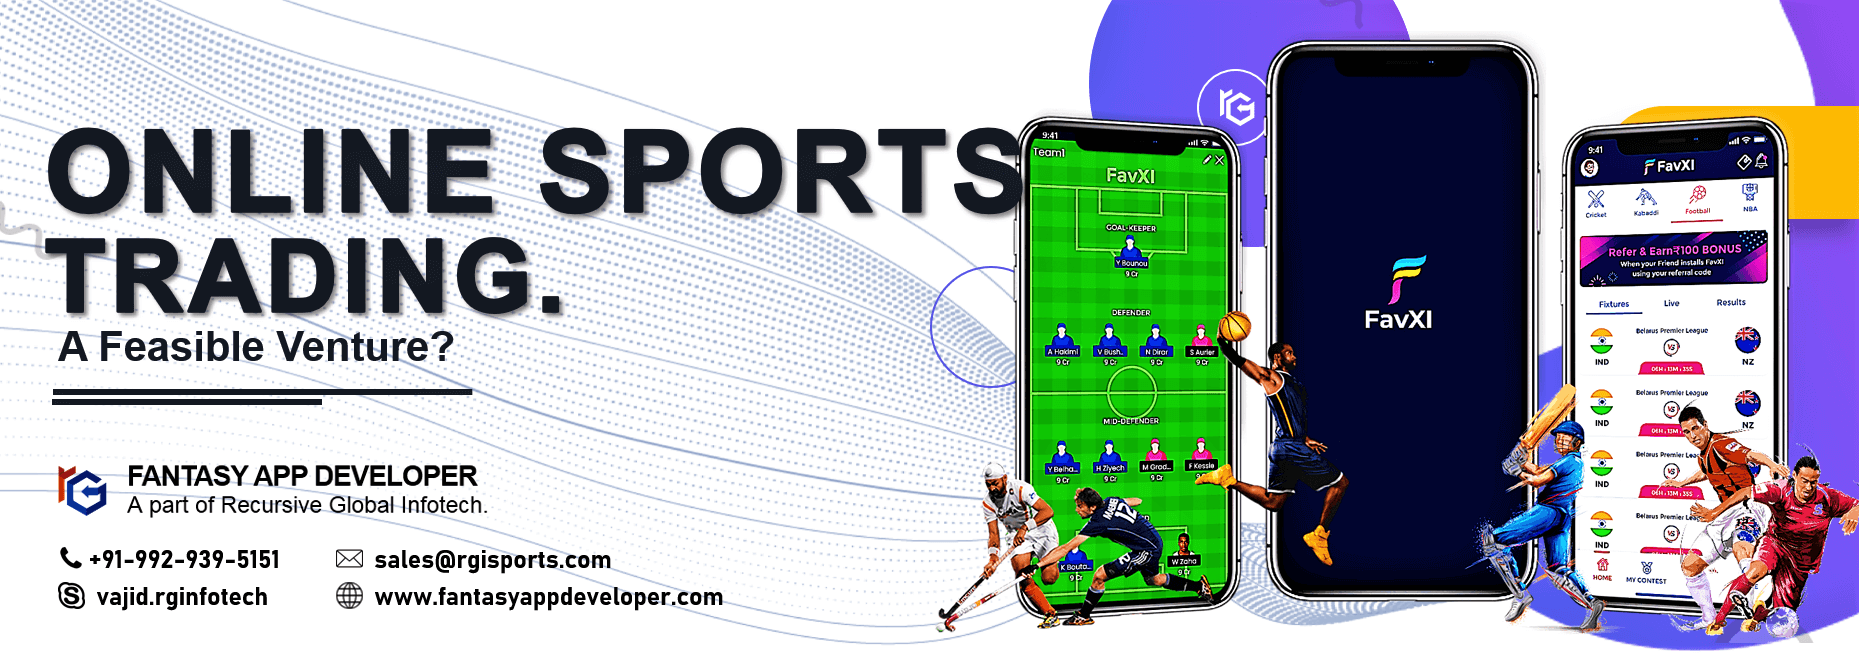 Online Sports Trading